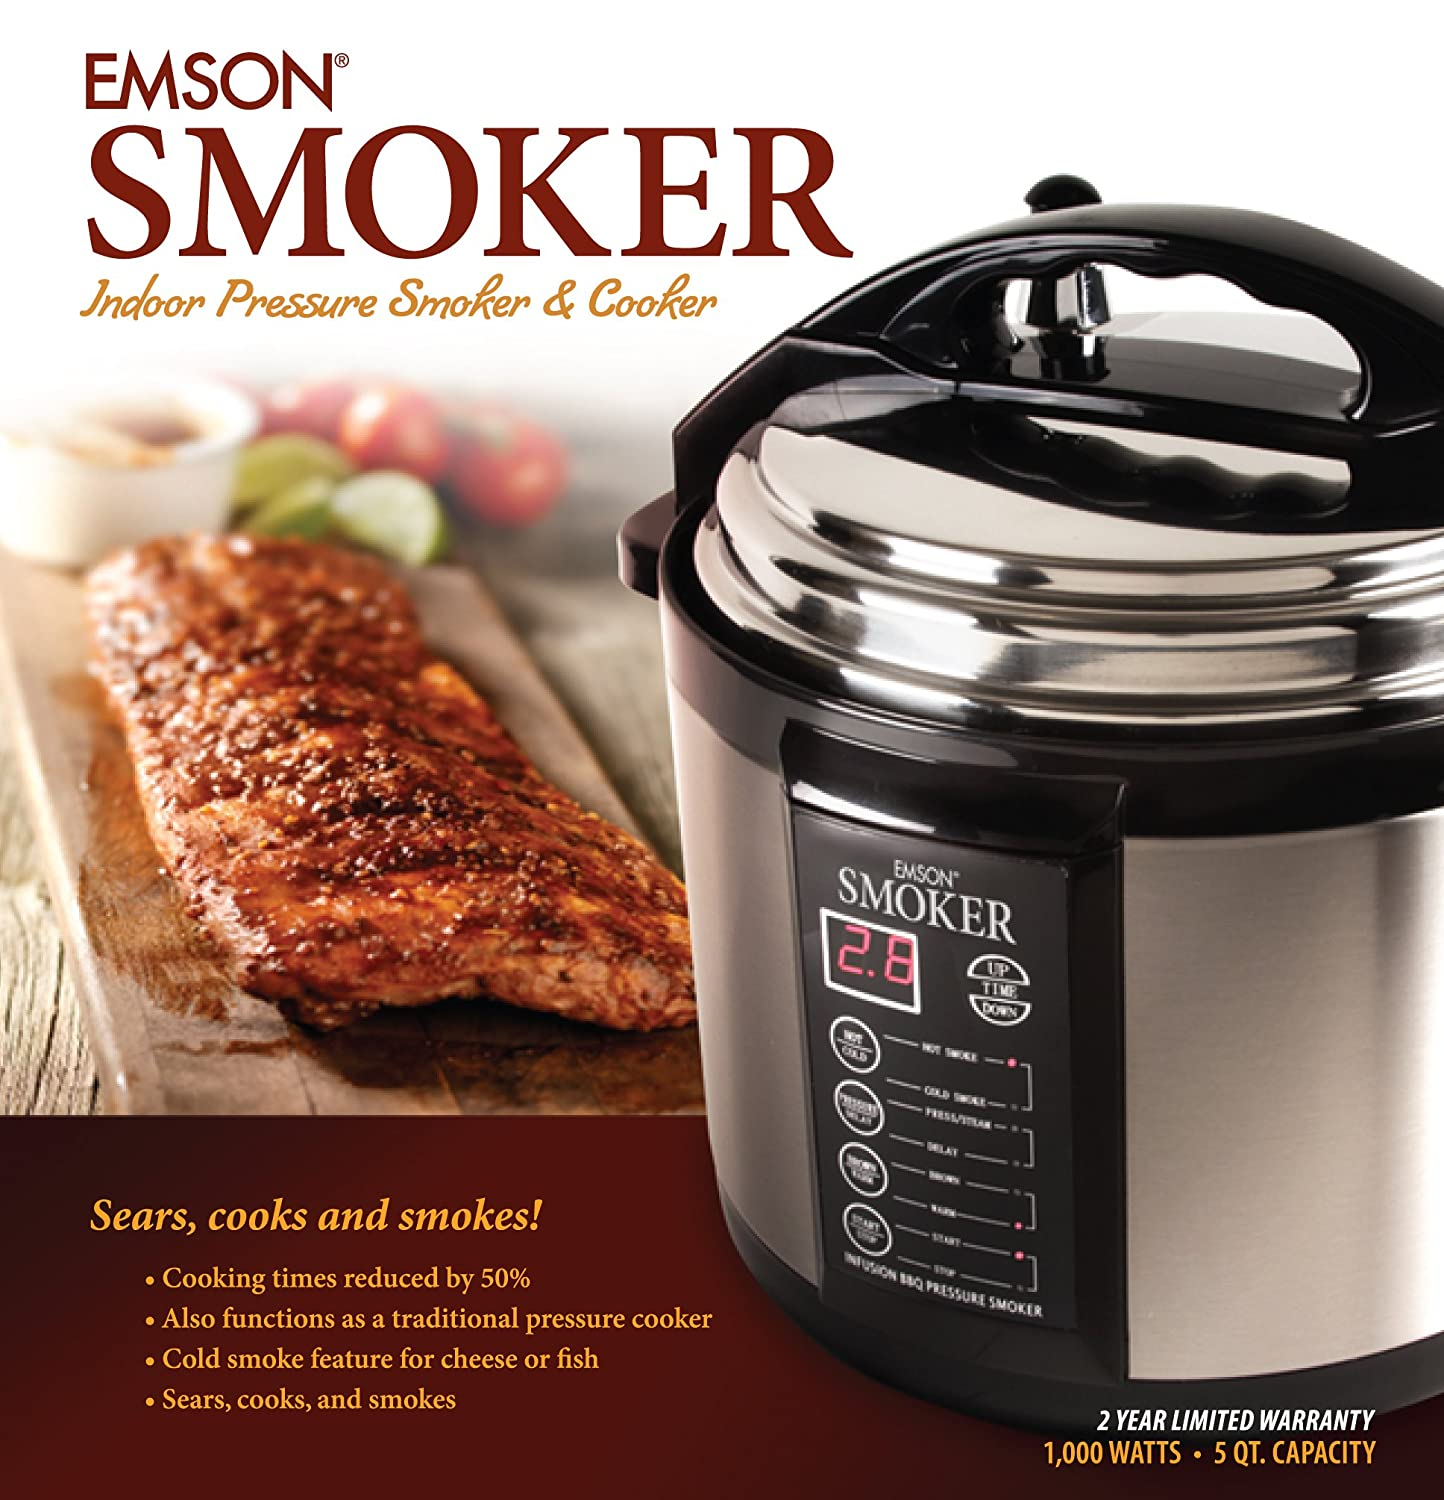 Emson smoker indoor pressure smoker cooker 1 000 watts 5 for Electric pressure cooker fish recipes